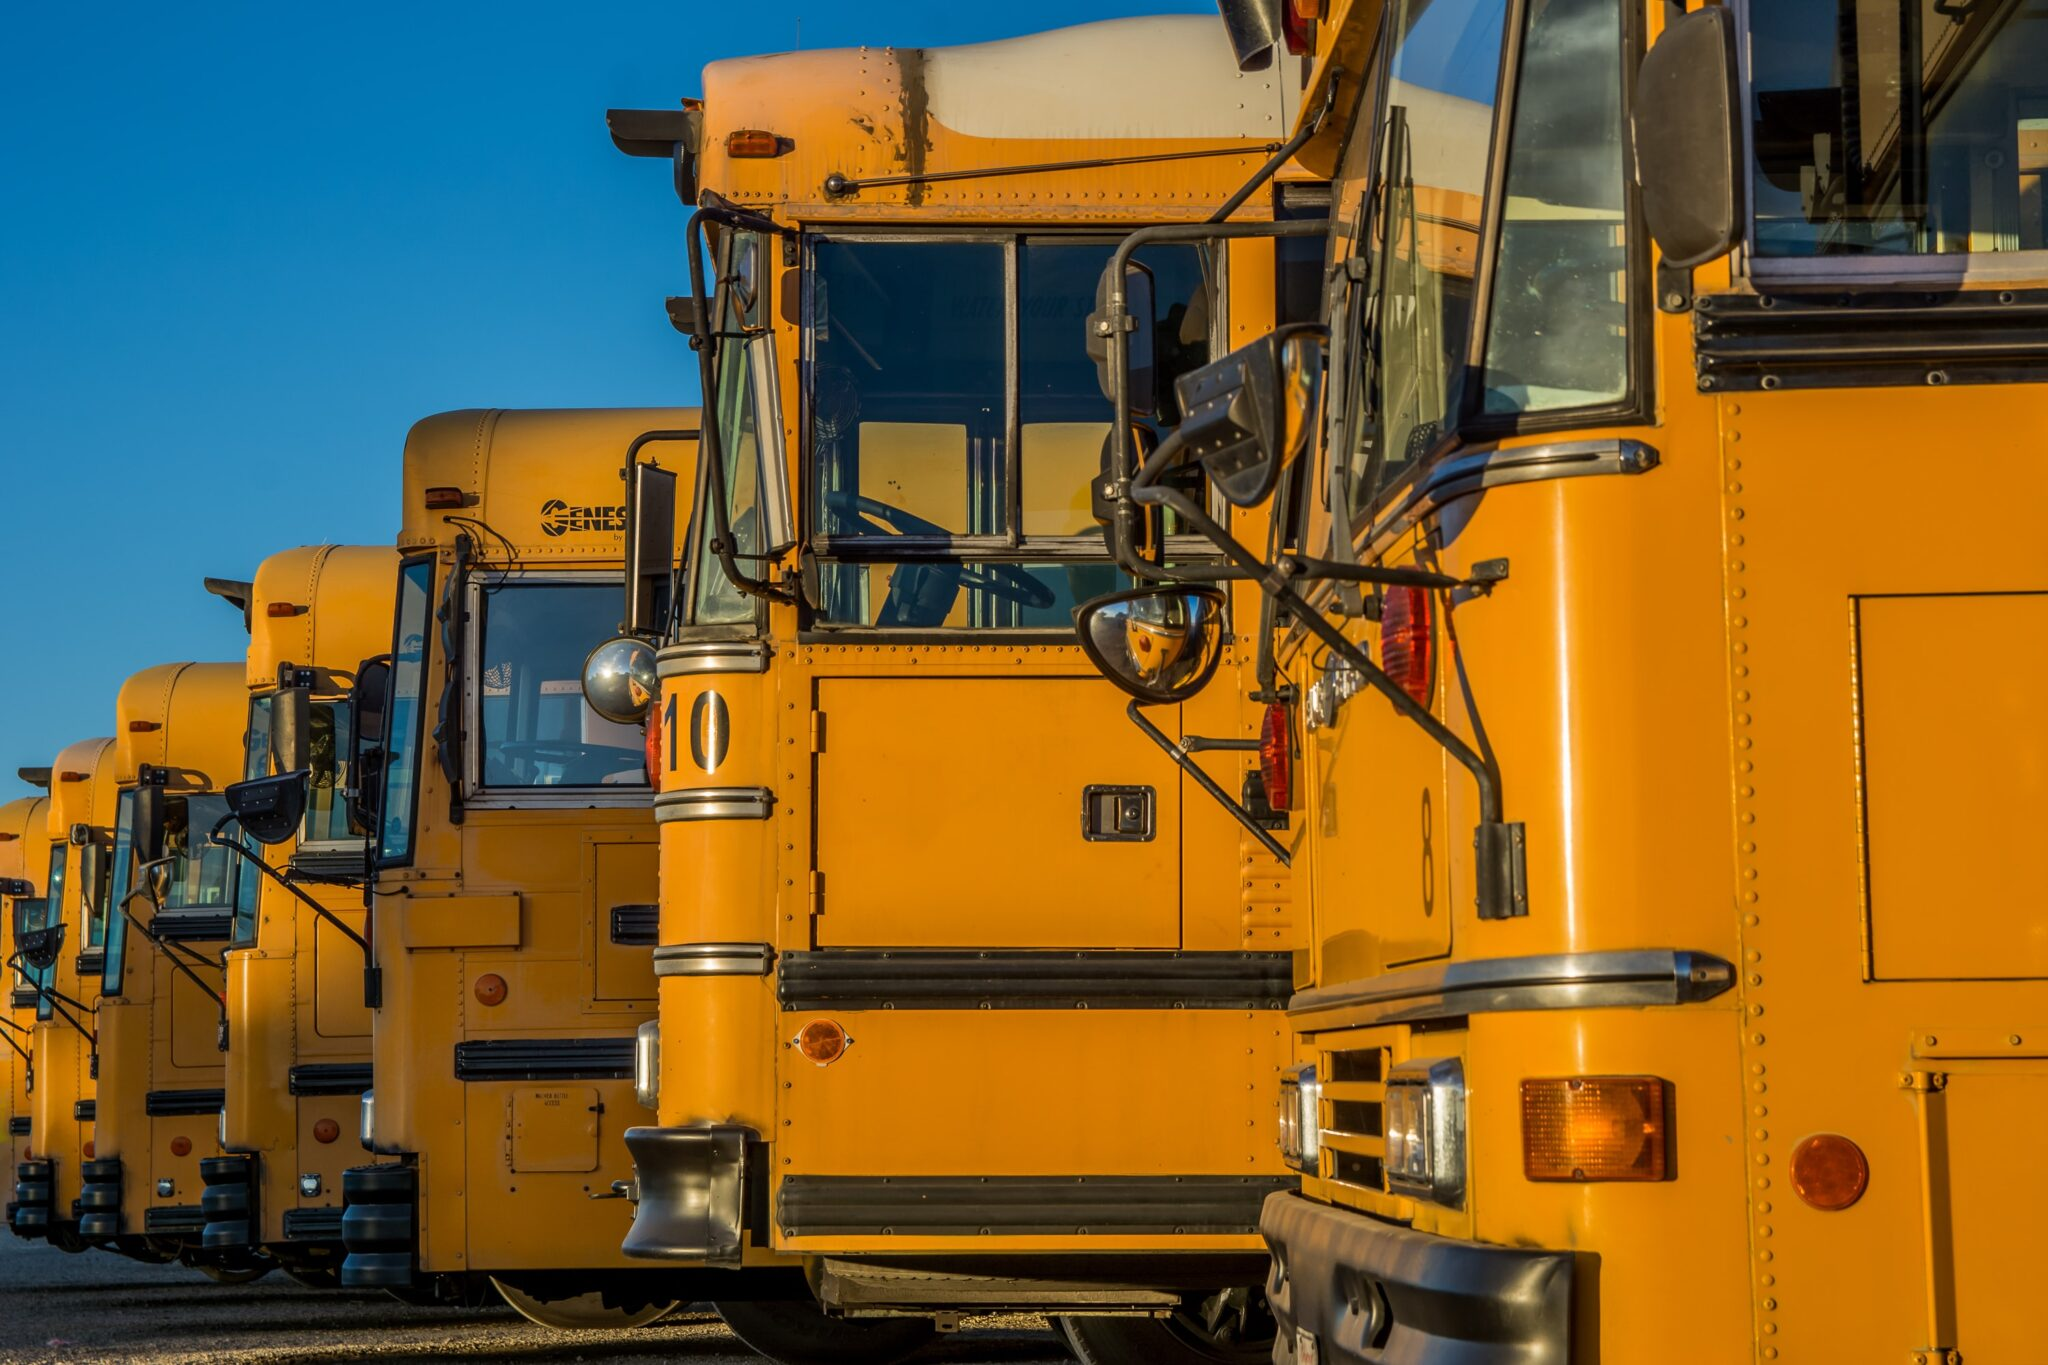 School buses lined up next to each other. For CINS / juvenile law blog.